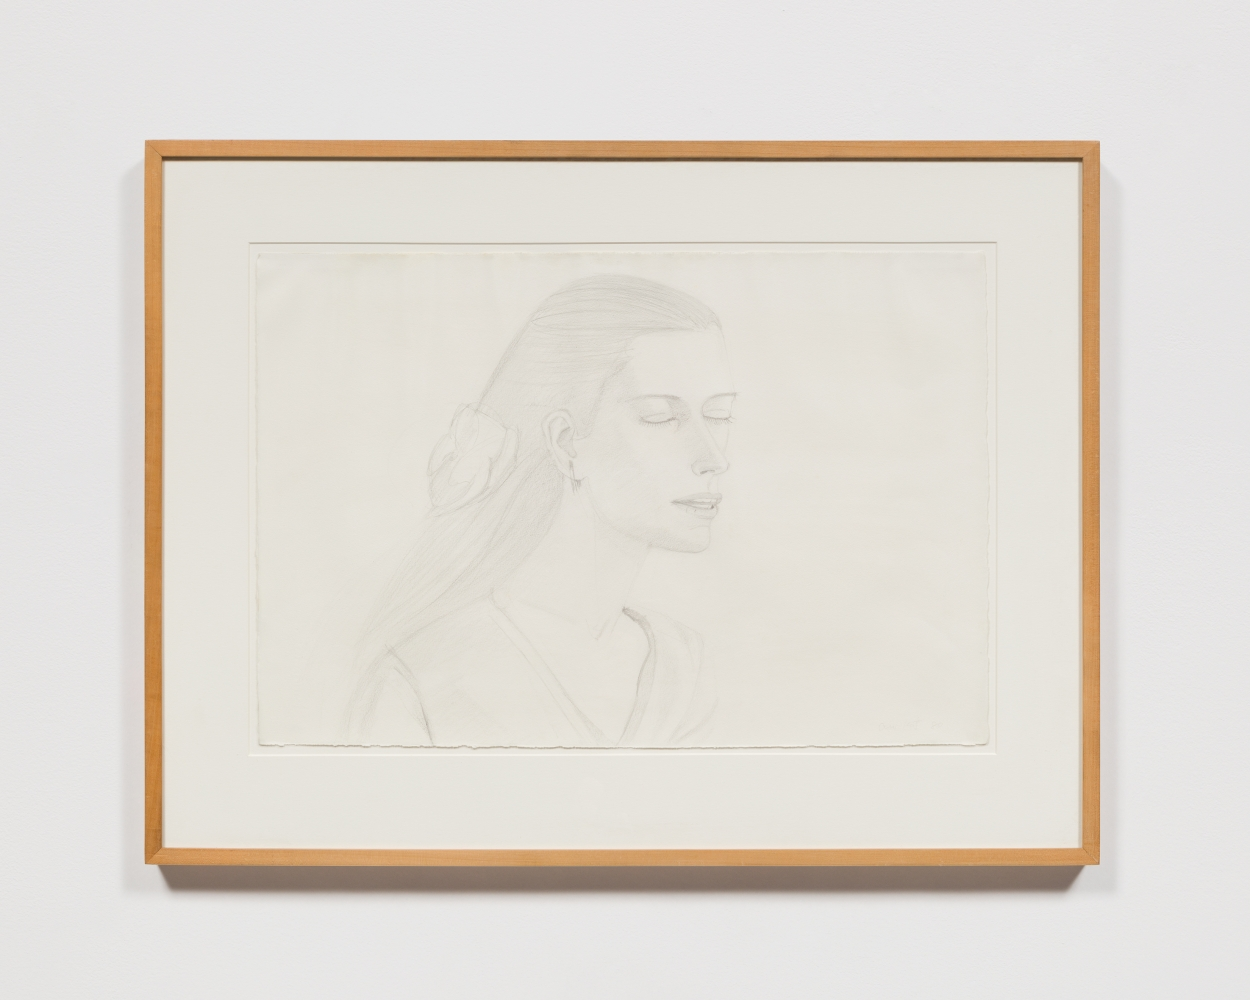 Framed pencil drawing by Alex Katz featuring the side-view of a woman with her eyes closed